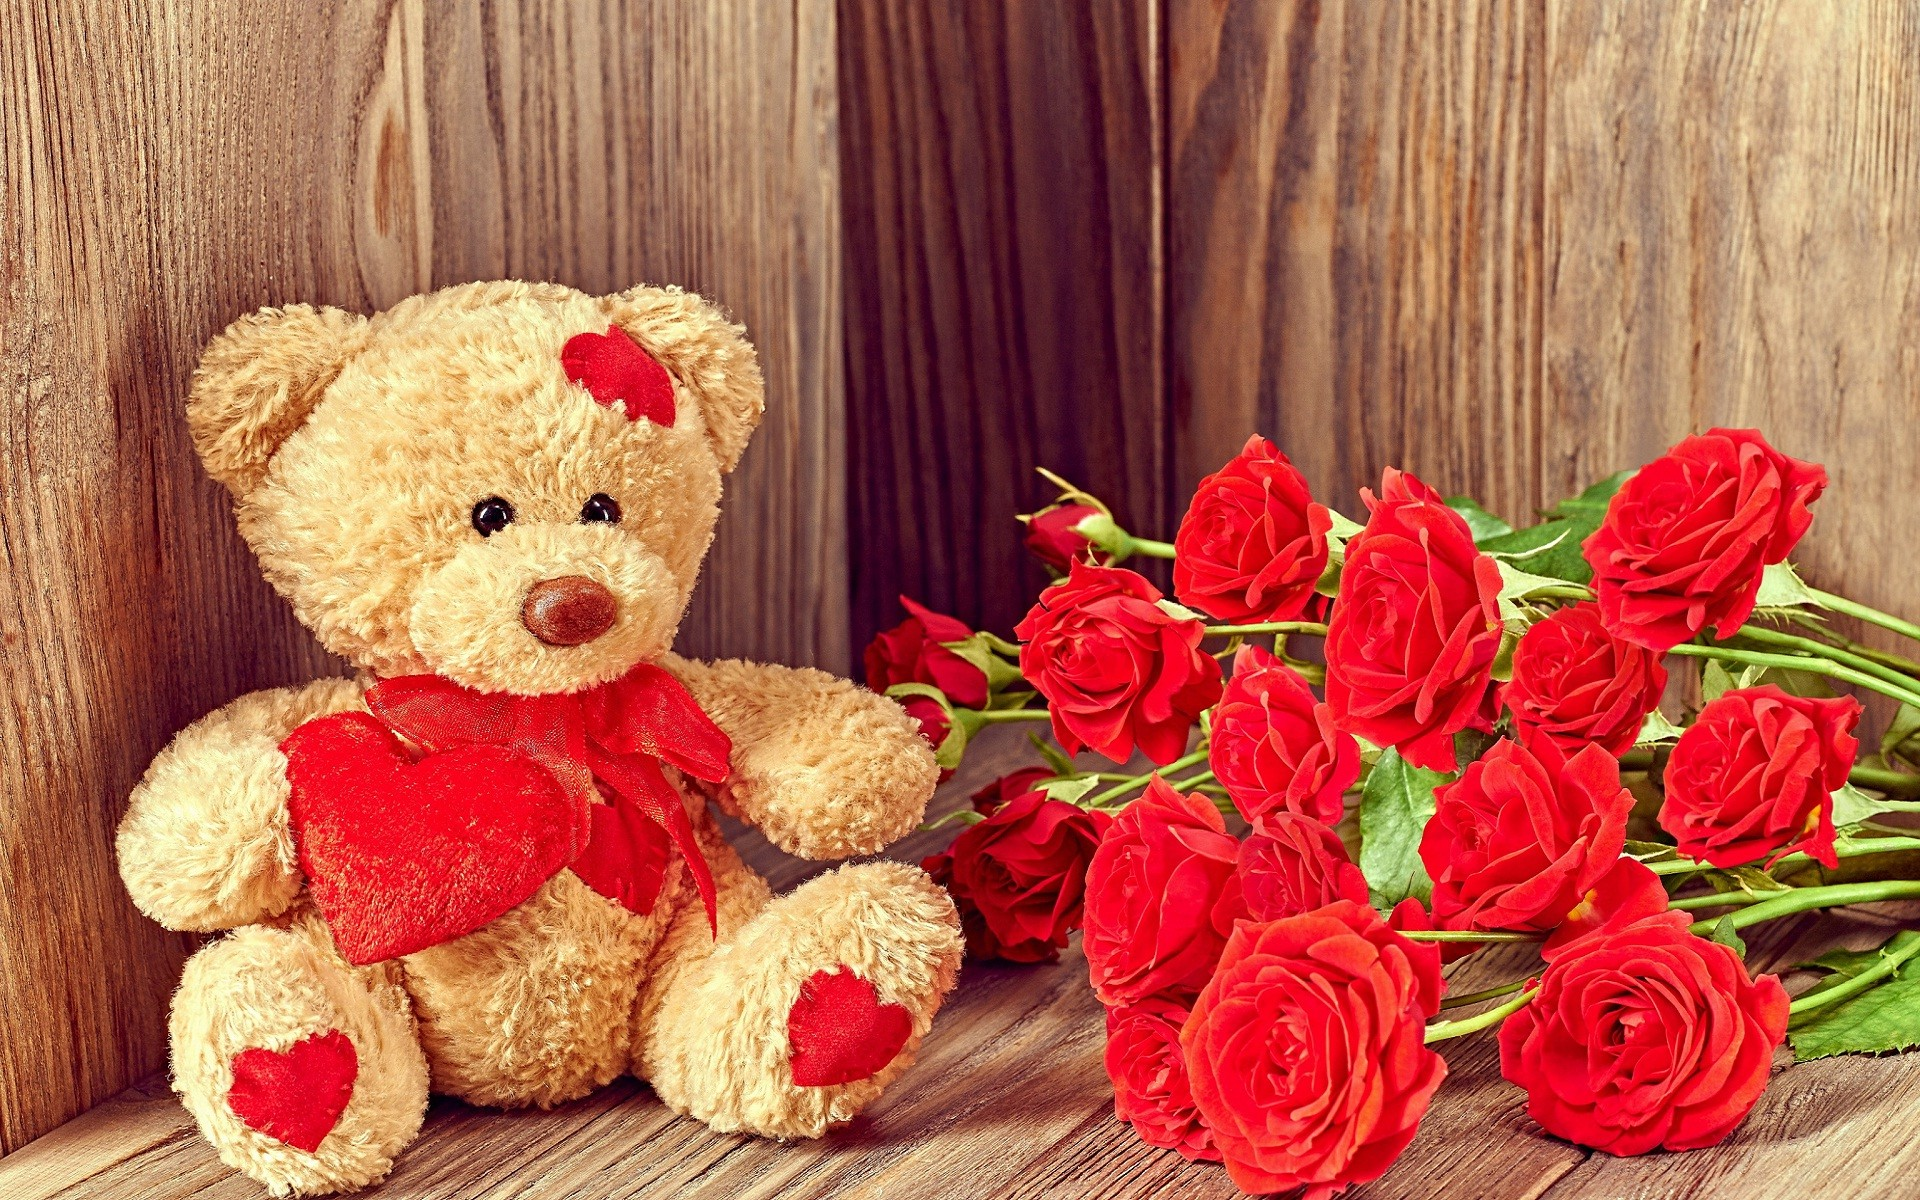 Teddy bear wallpapers with flowers – photo#18